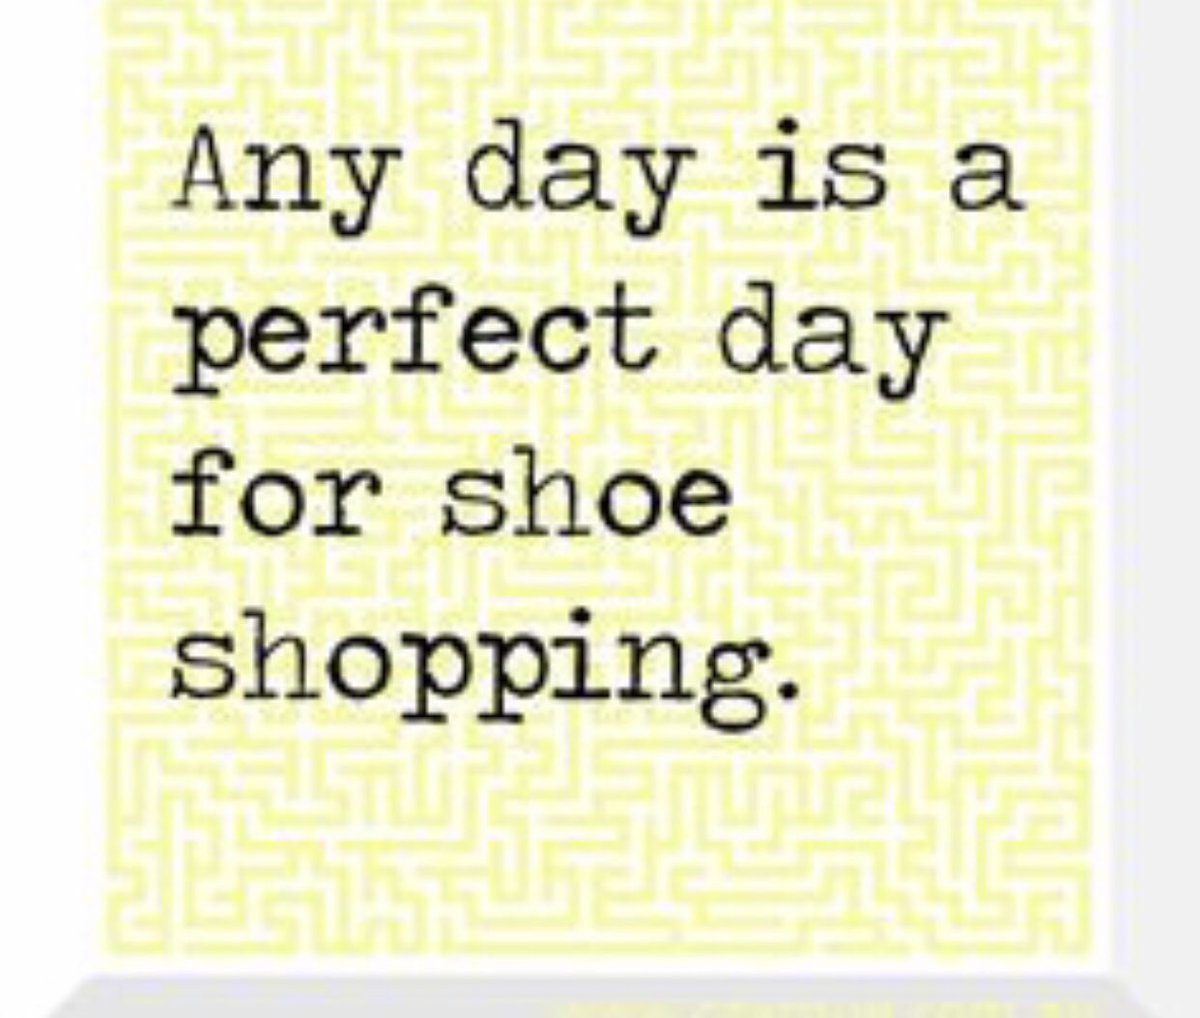 Shop With Us Today 👠 Happy Monday #NAJGBaes 💛 Shop Now! Items Going Fast 🔥 Link in bio ❤️ DM To Become A Brand Ambassador 💌 • #shopnow #style #clothingline #Monday #shoppingday  #tagafriend #womensclothing #business  #onlineshopping  #fashionista #ootd #goodquality #boutique